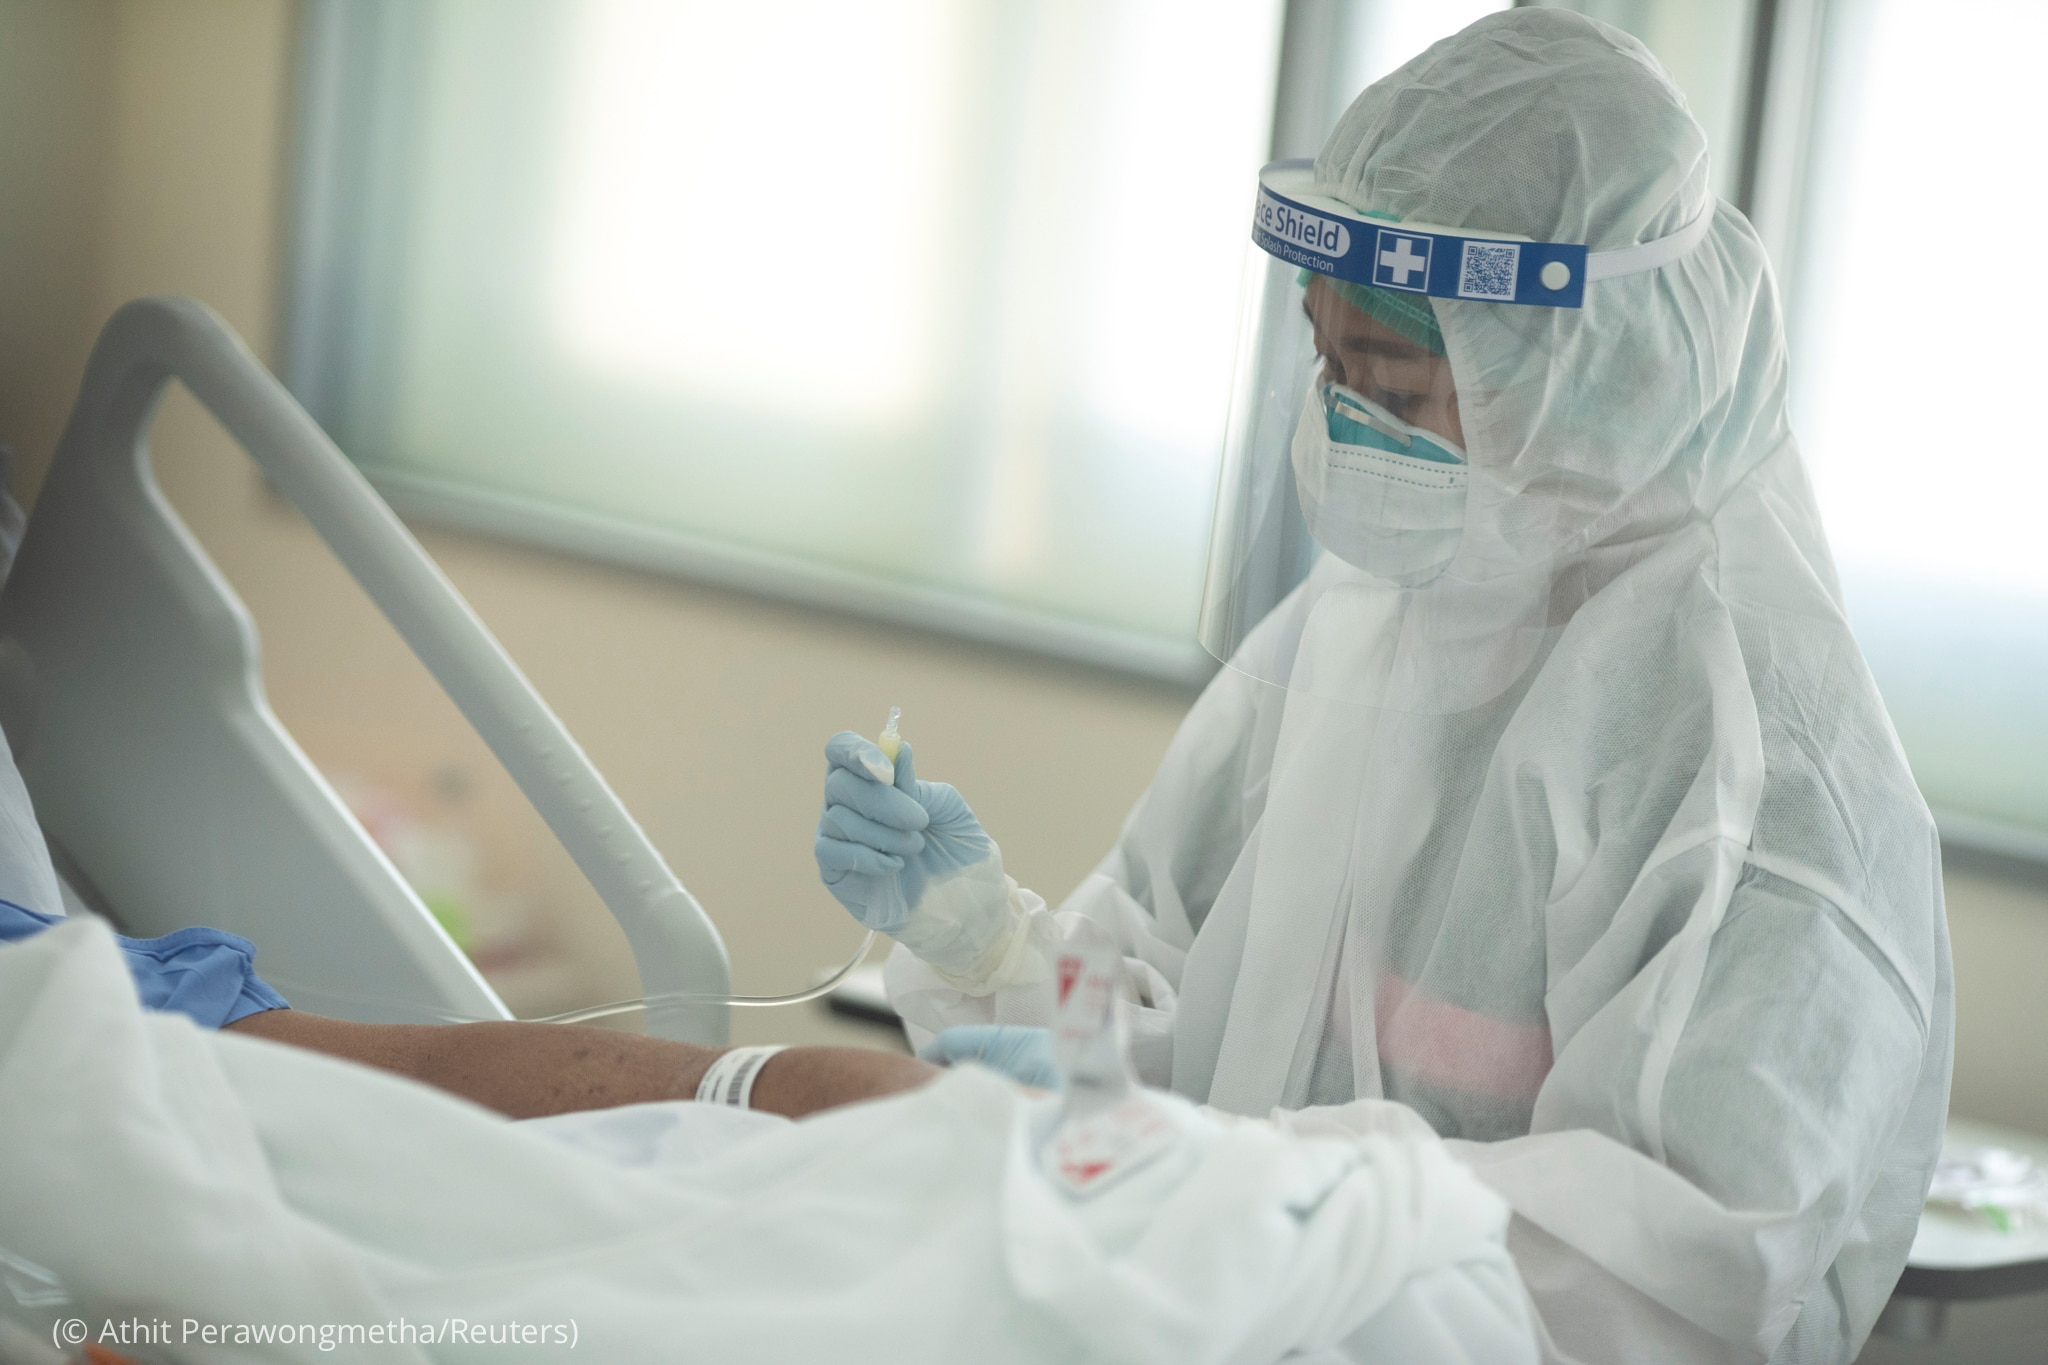 Masked and gowned person checking person in hospital bed (© Athit Perawongmetha/Reuters)